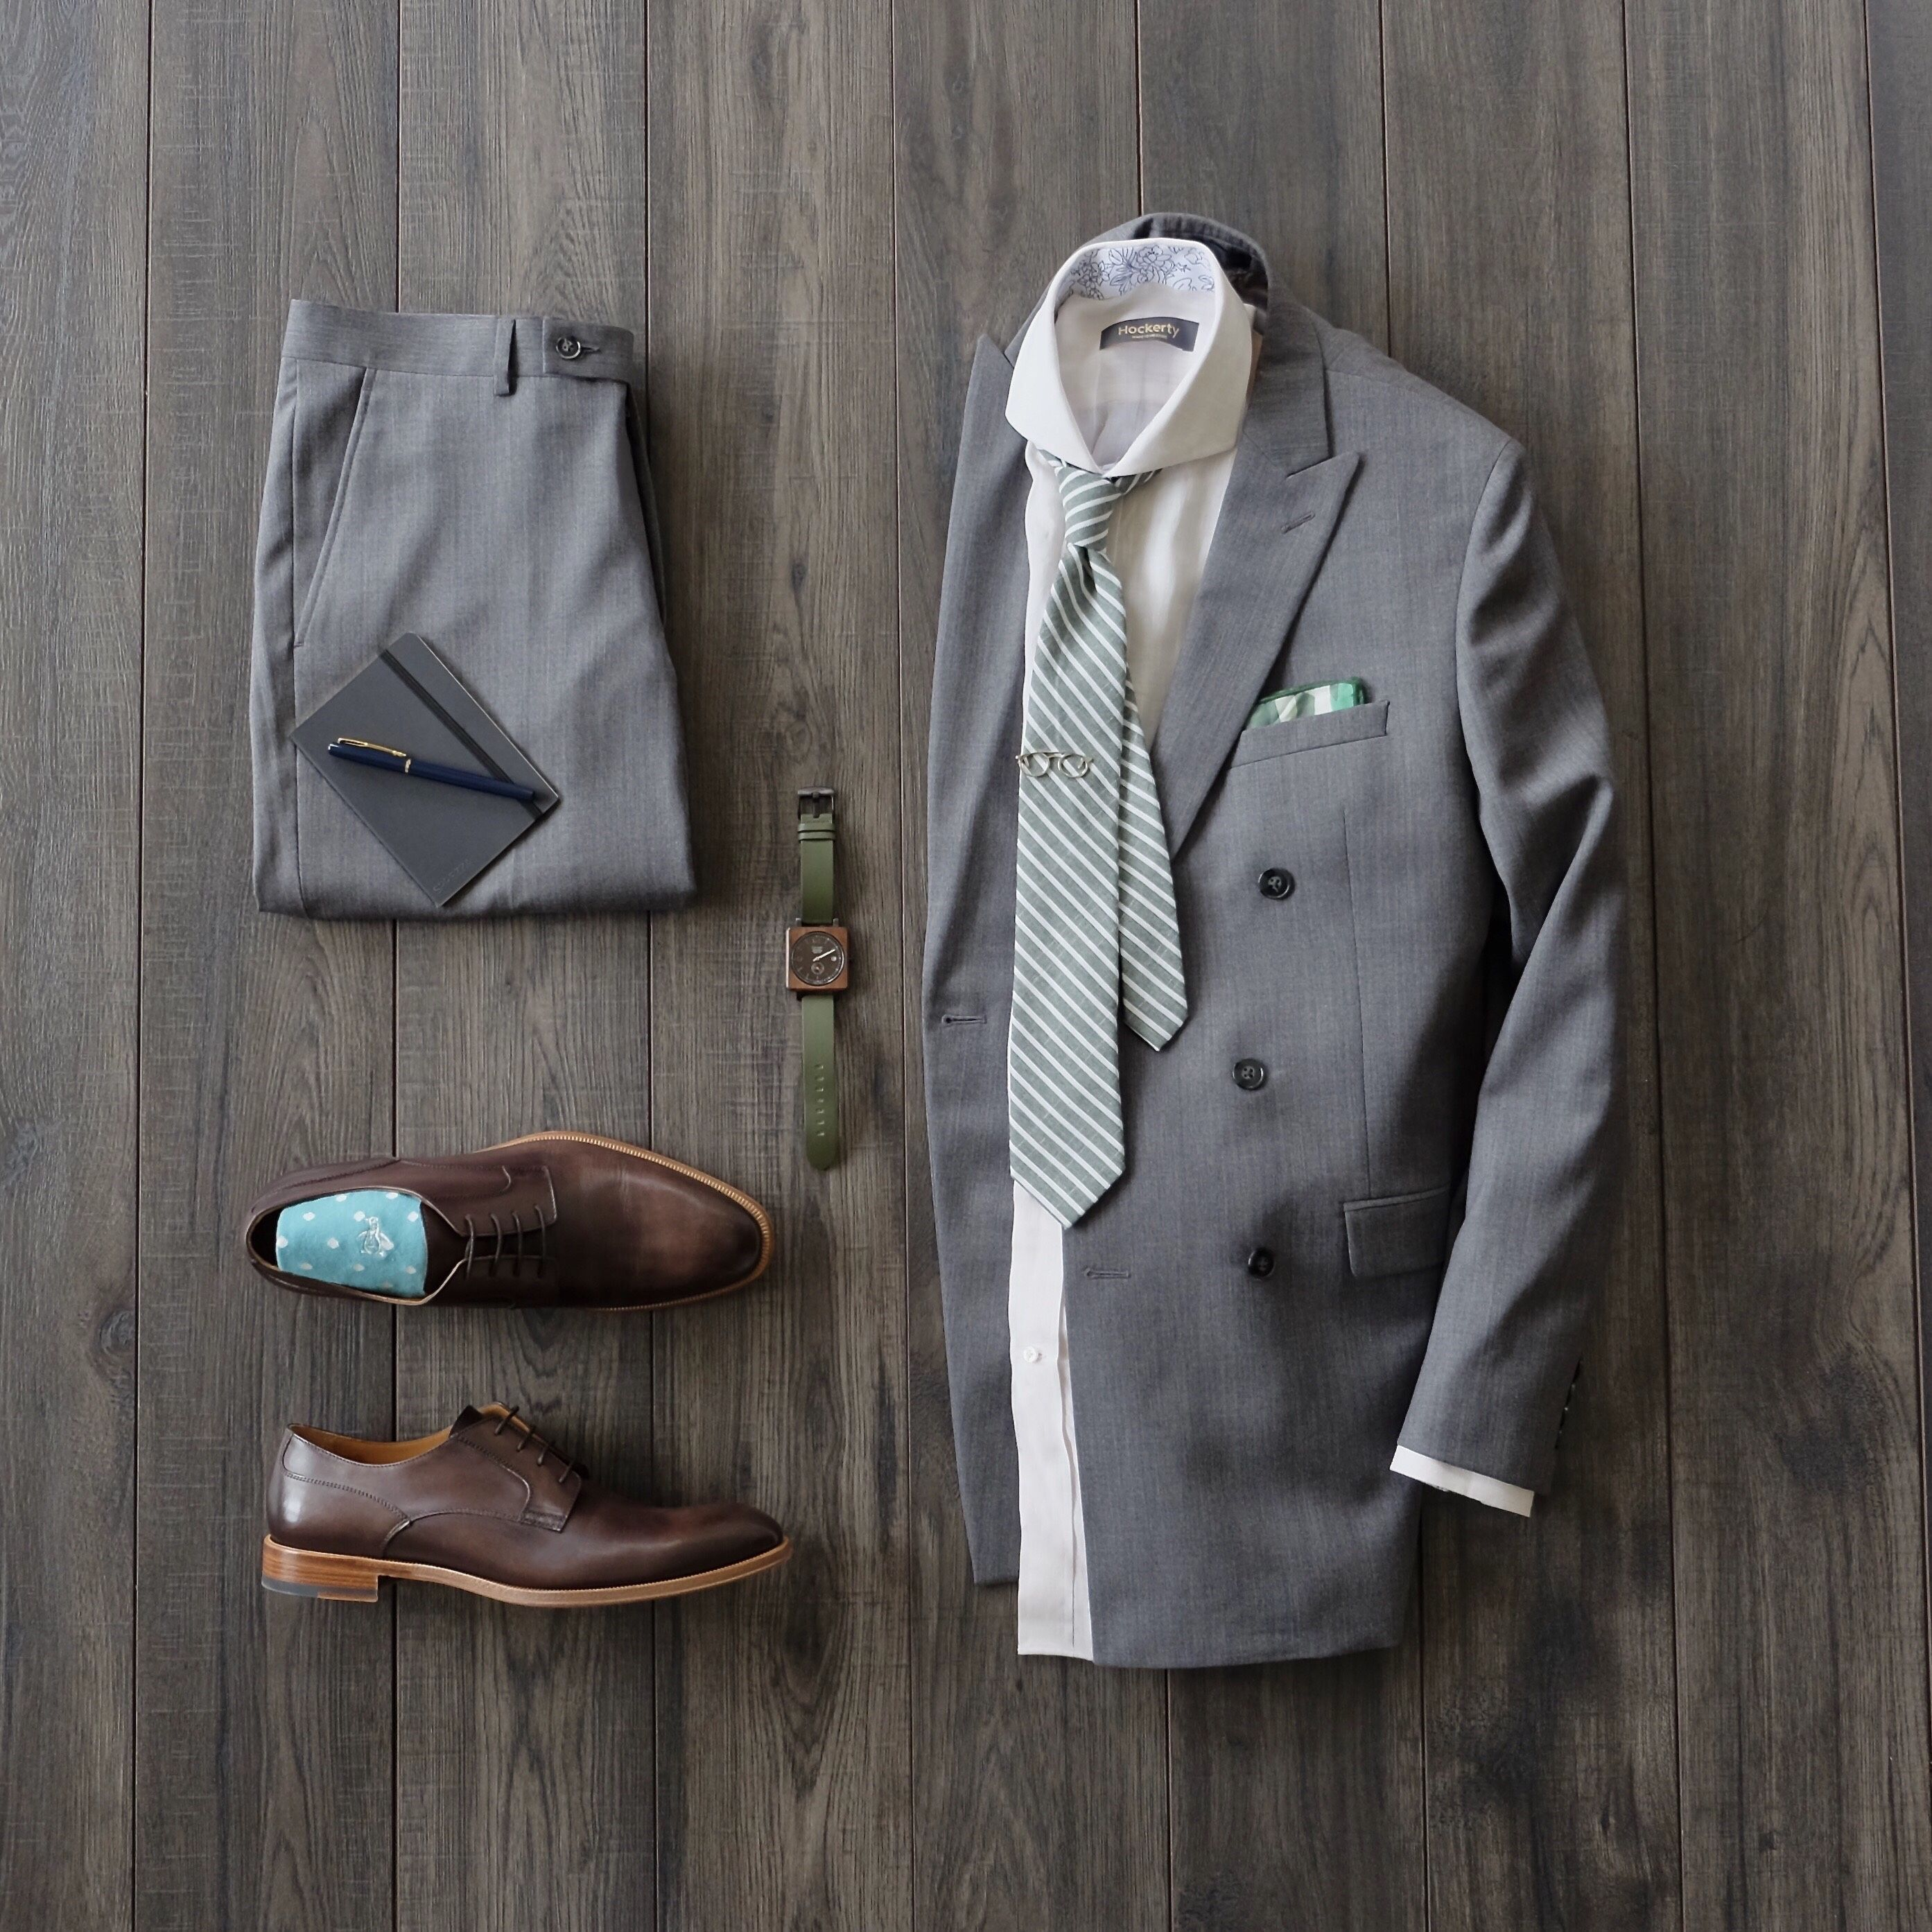 Double breasted suit inspiration with a green striped tie aqua socks